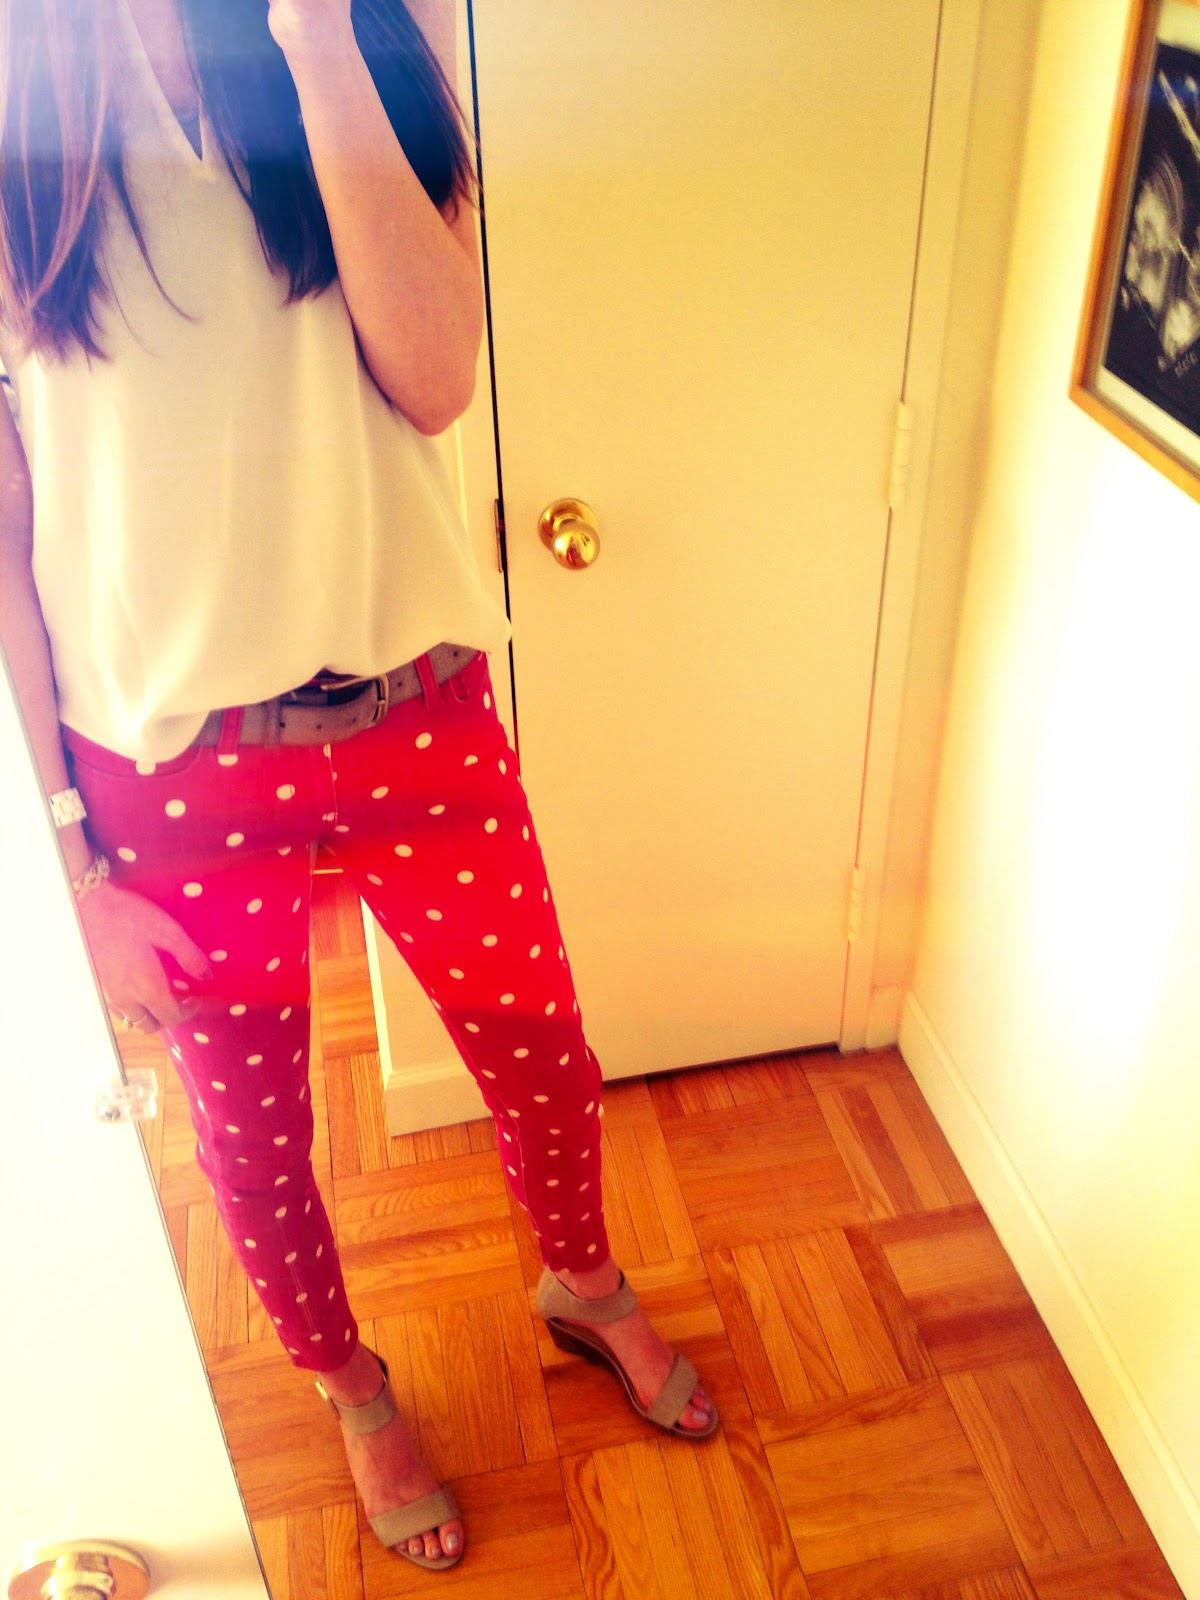 To fall into love those red polka dot pants those red polka dot pants sisterspd